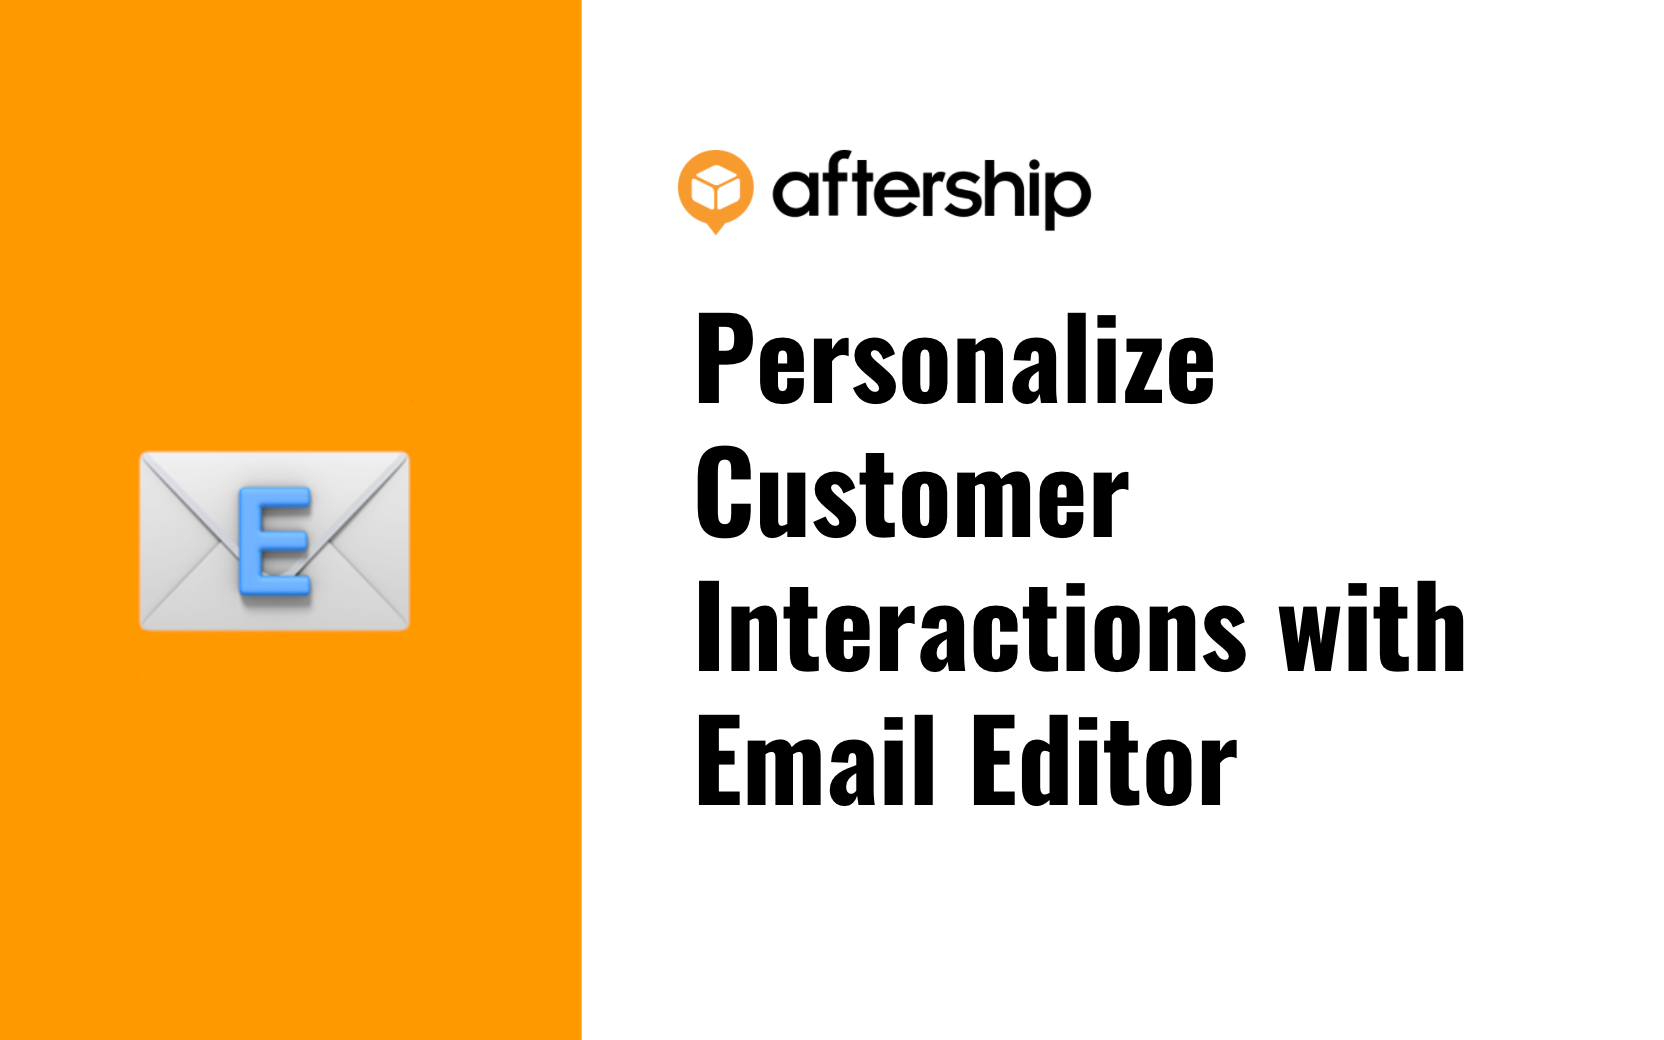 Enhance Customer Experience With AfterShip's New Email Editor